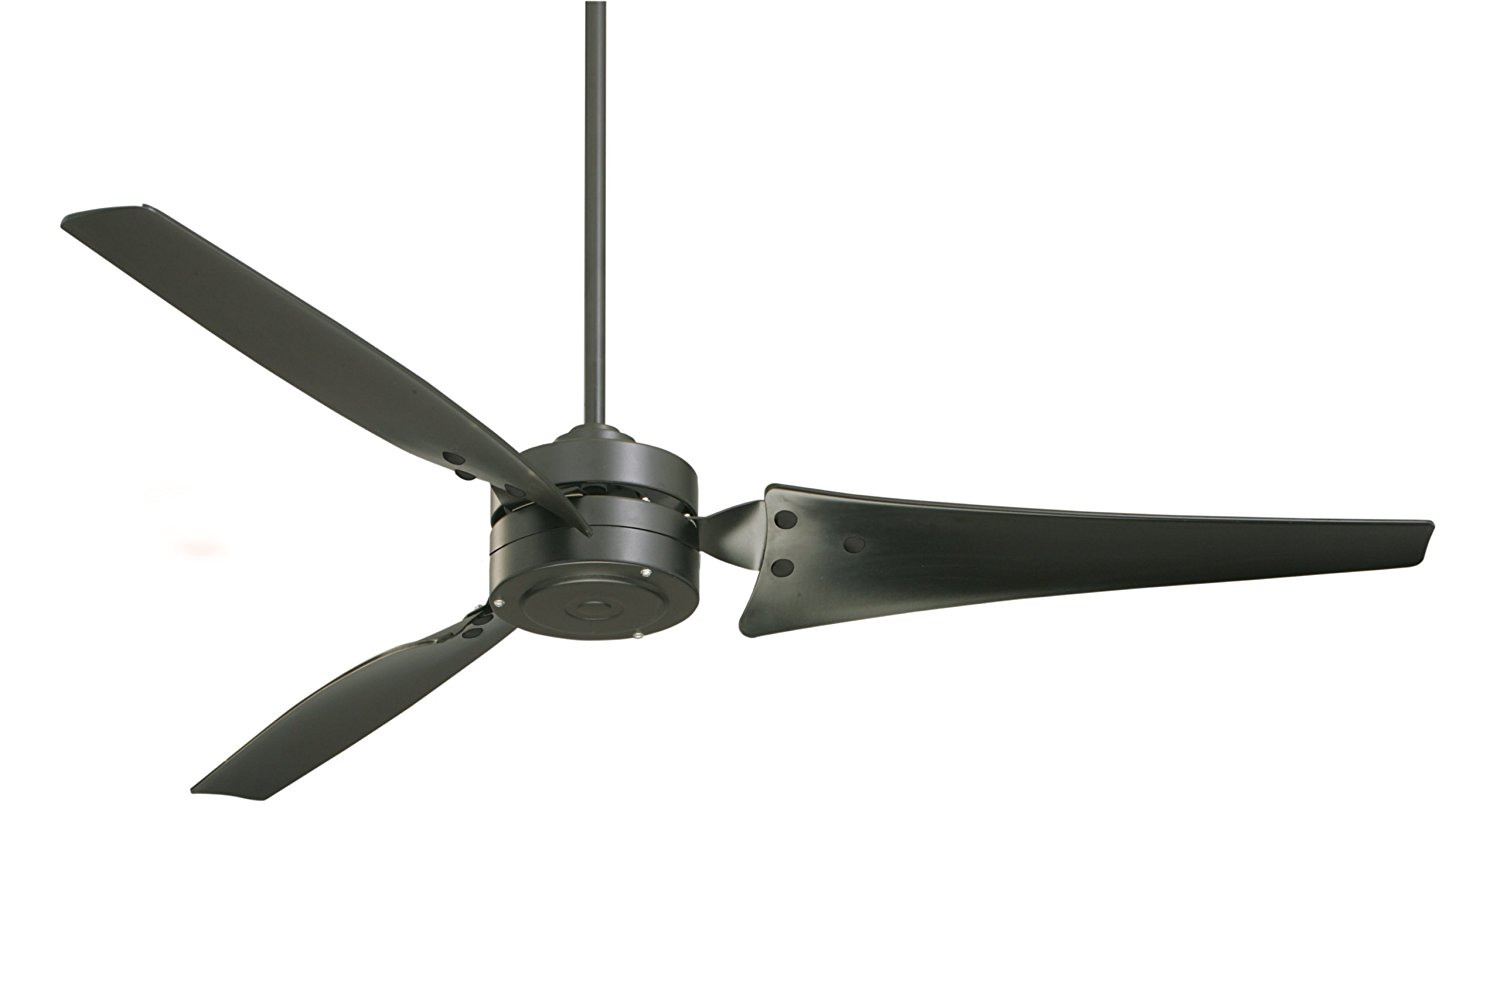 Emerson CF765BQ Ceiling Fan with 4 Speed Wall Control and 60-Inch Blades, Barbeque Black Finish